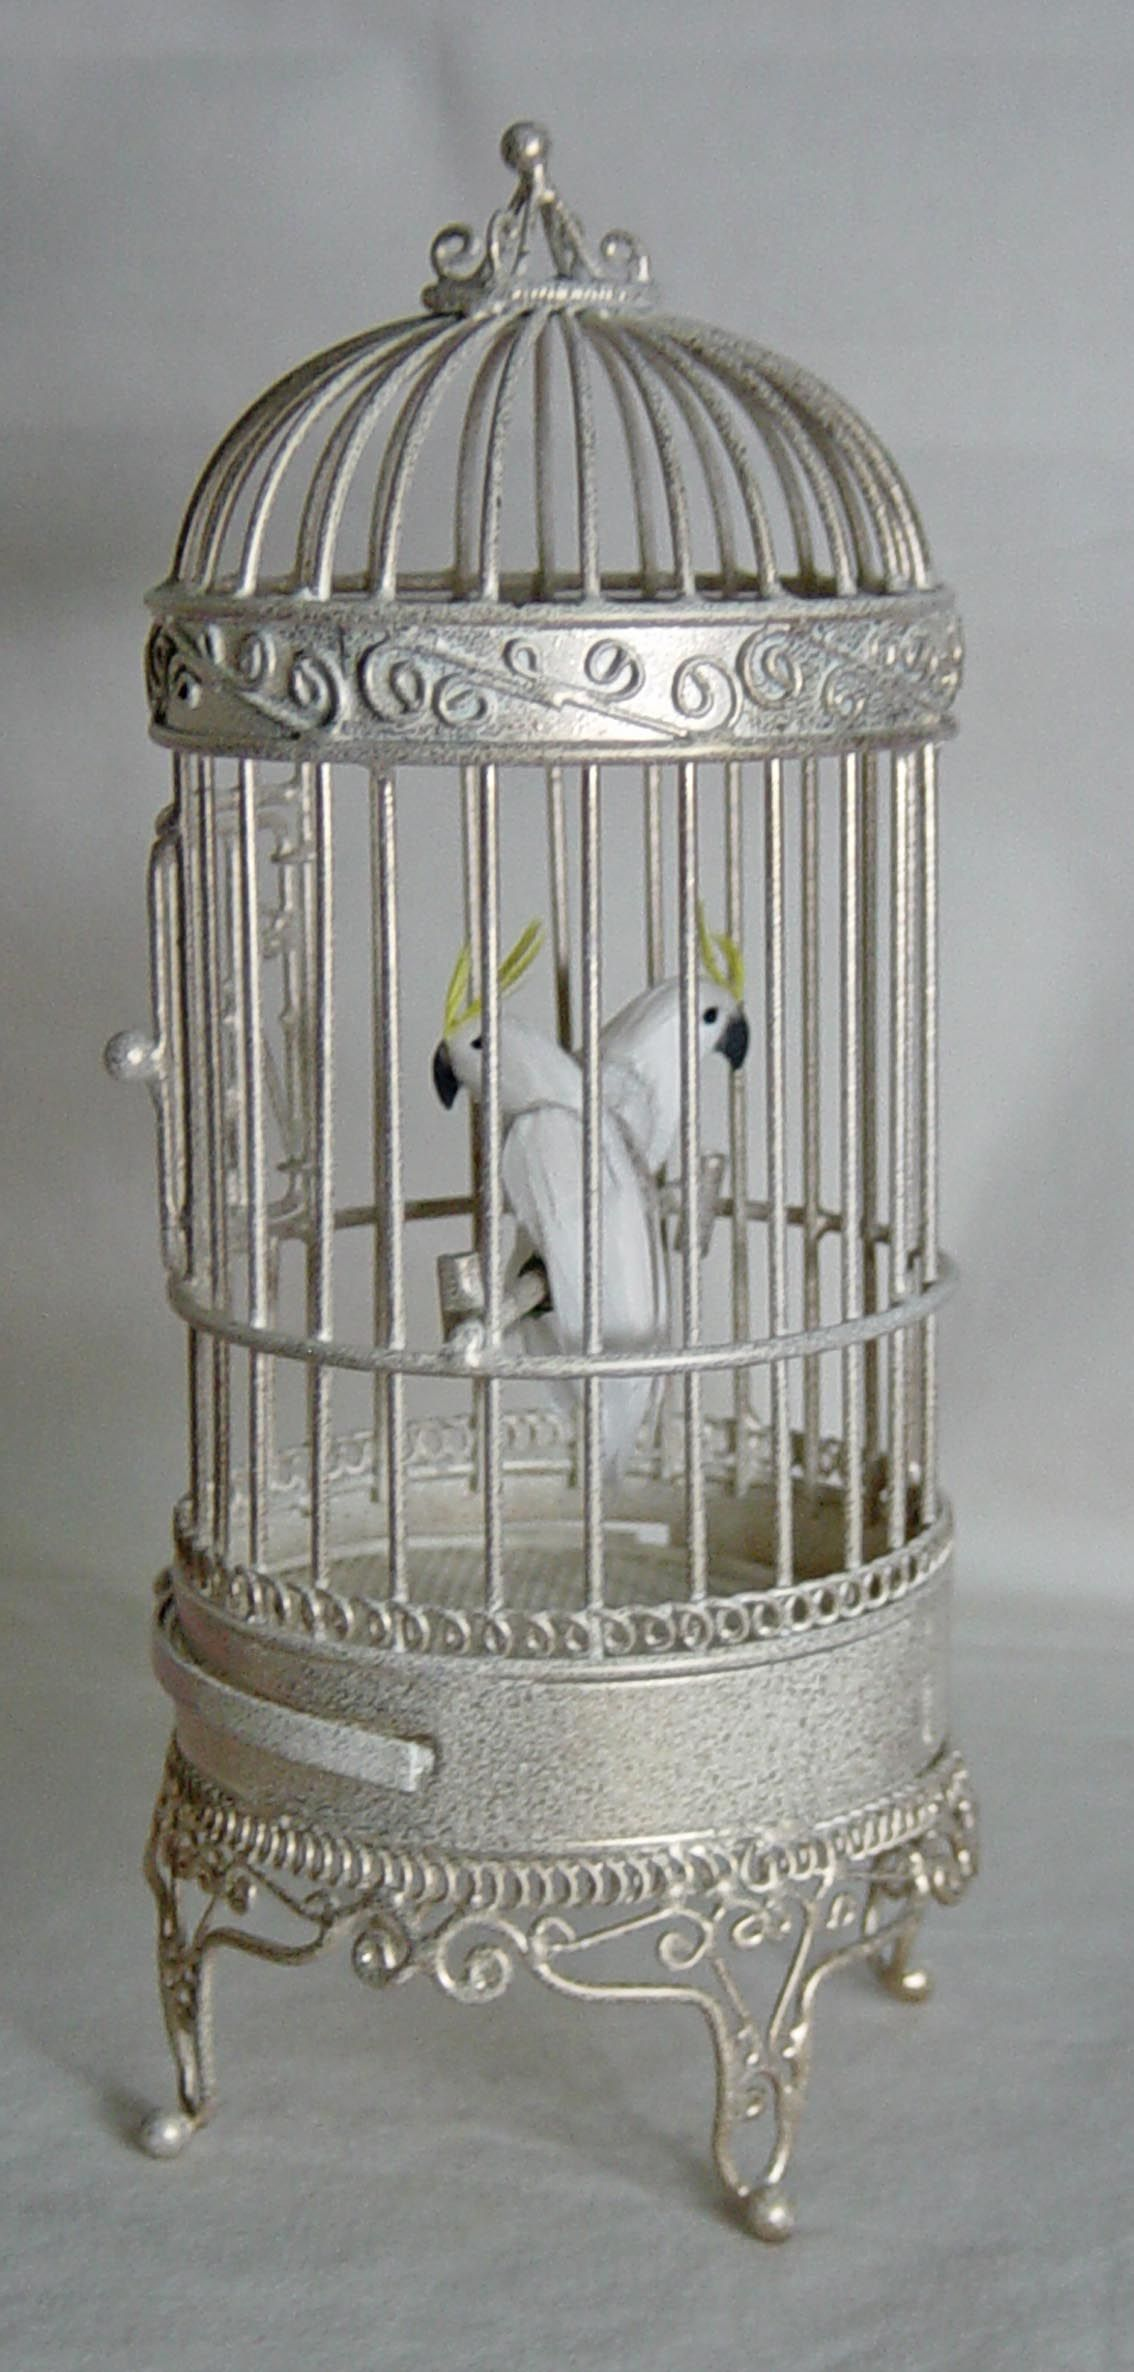 UNIQUE MINIATURES, VAL HARPER - Floor Standing Bird Cage and two  Cockatoo's.This is